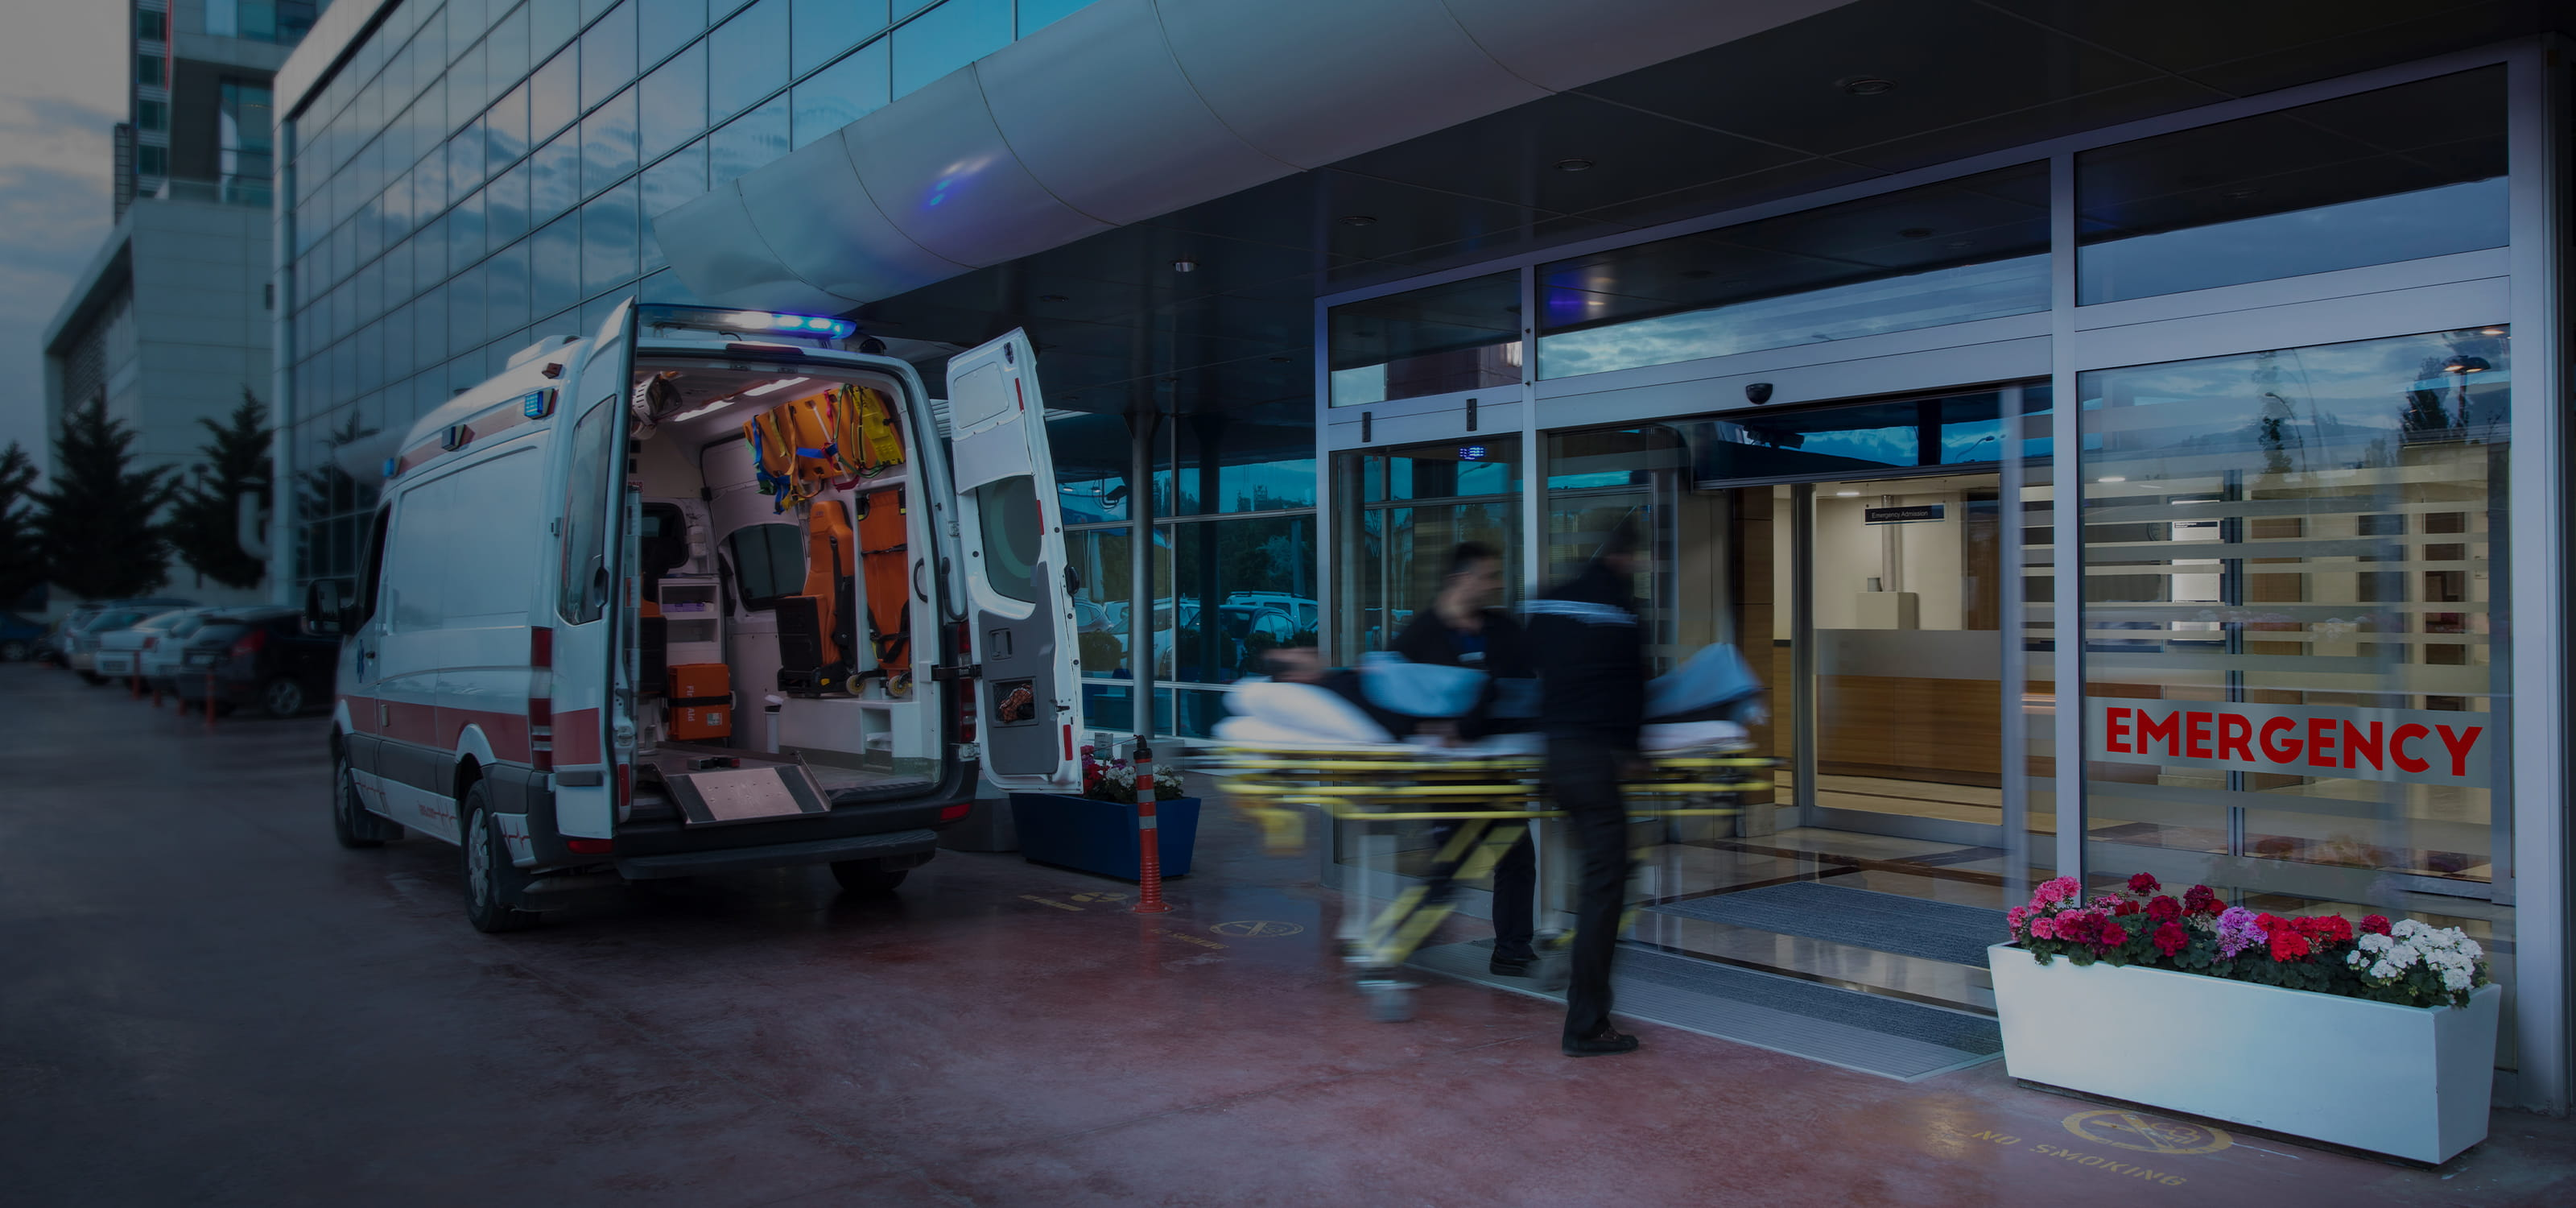 Ambulance Cover Be Covered For Emergency Ambulance Calls Hif Apart from reposts of the previously mentioned video, this meme was largely unused until. ambulance cover be covered for